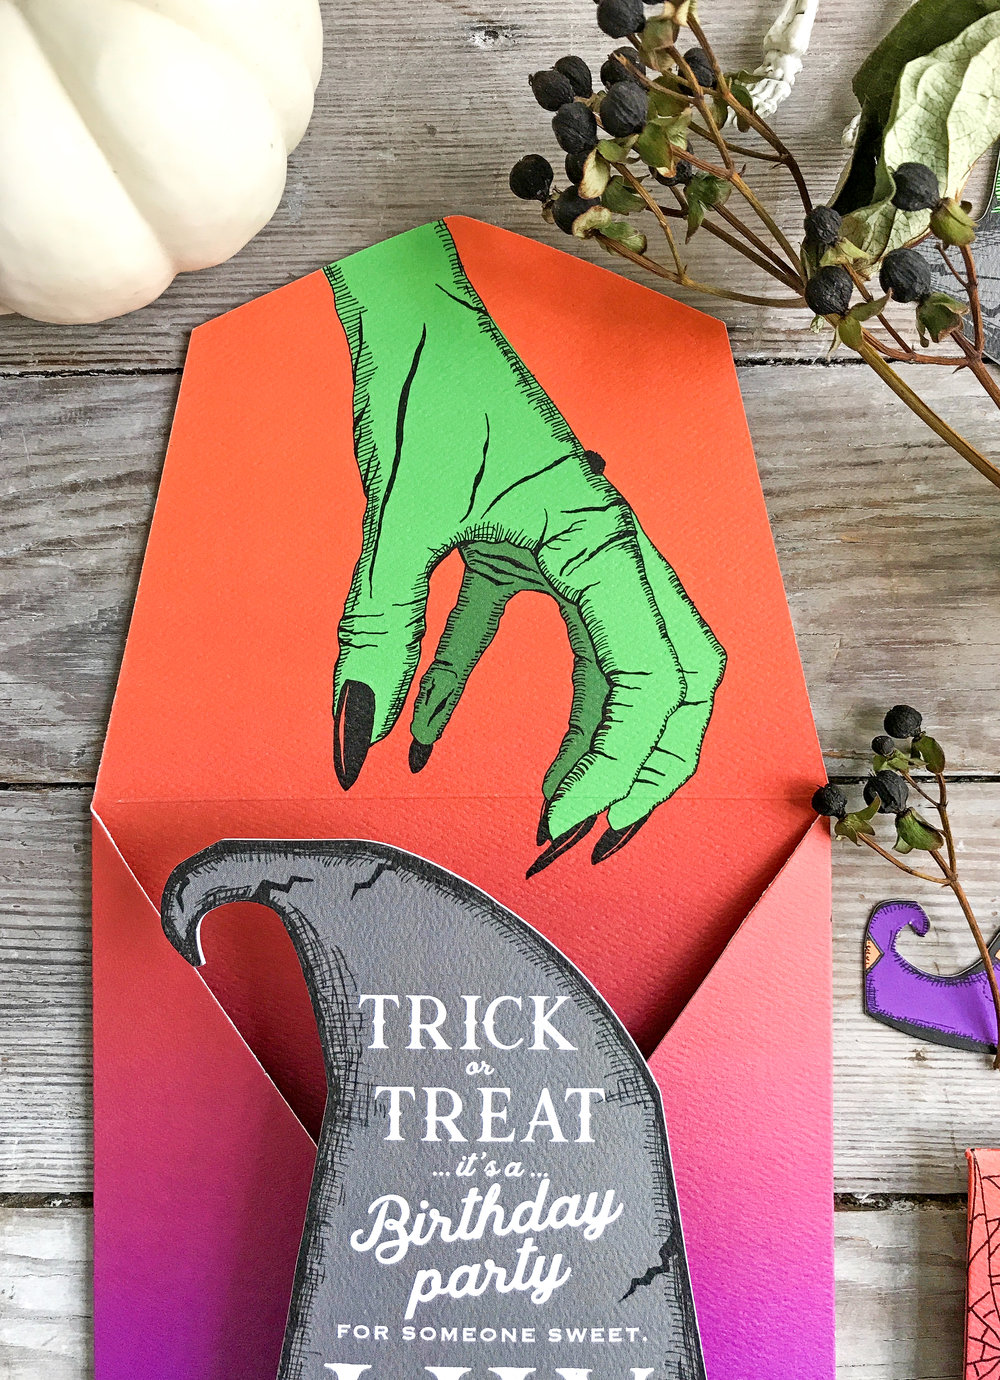 quite a spooky witches hand coming for that hat!